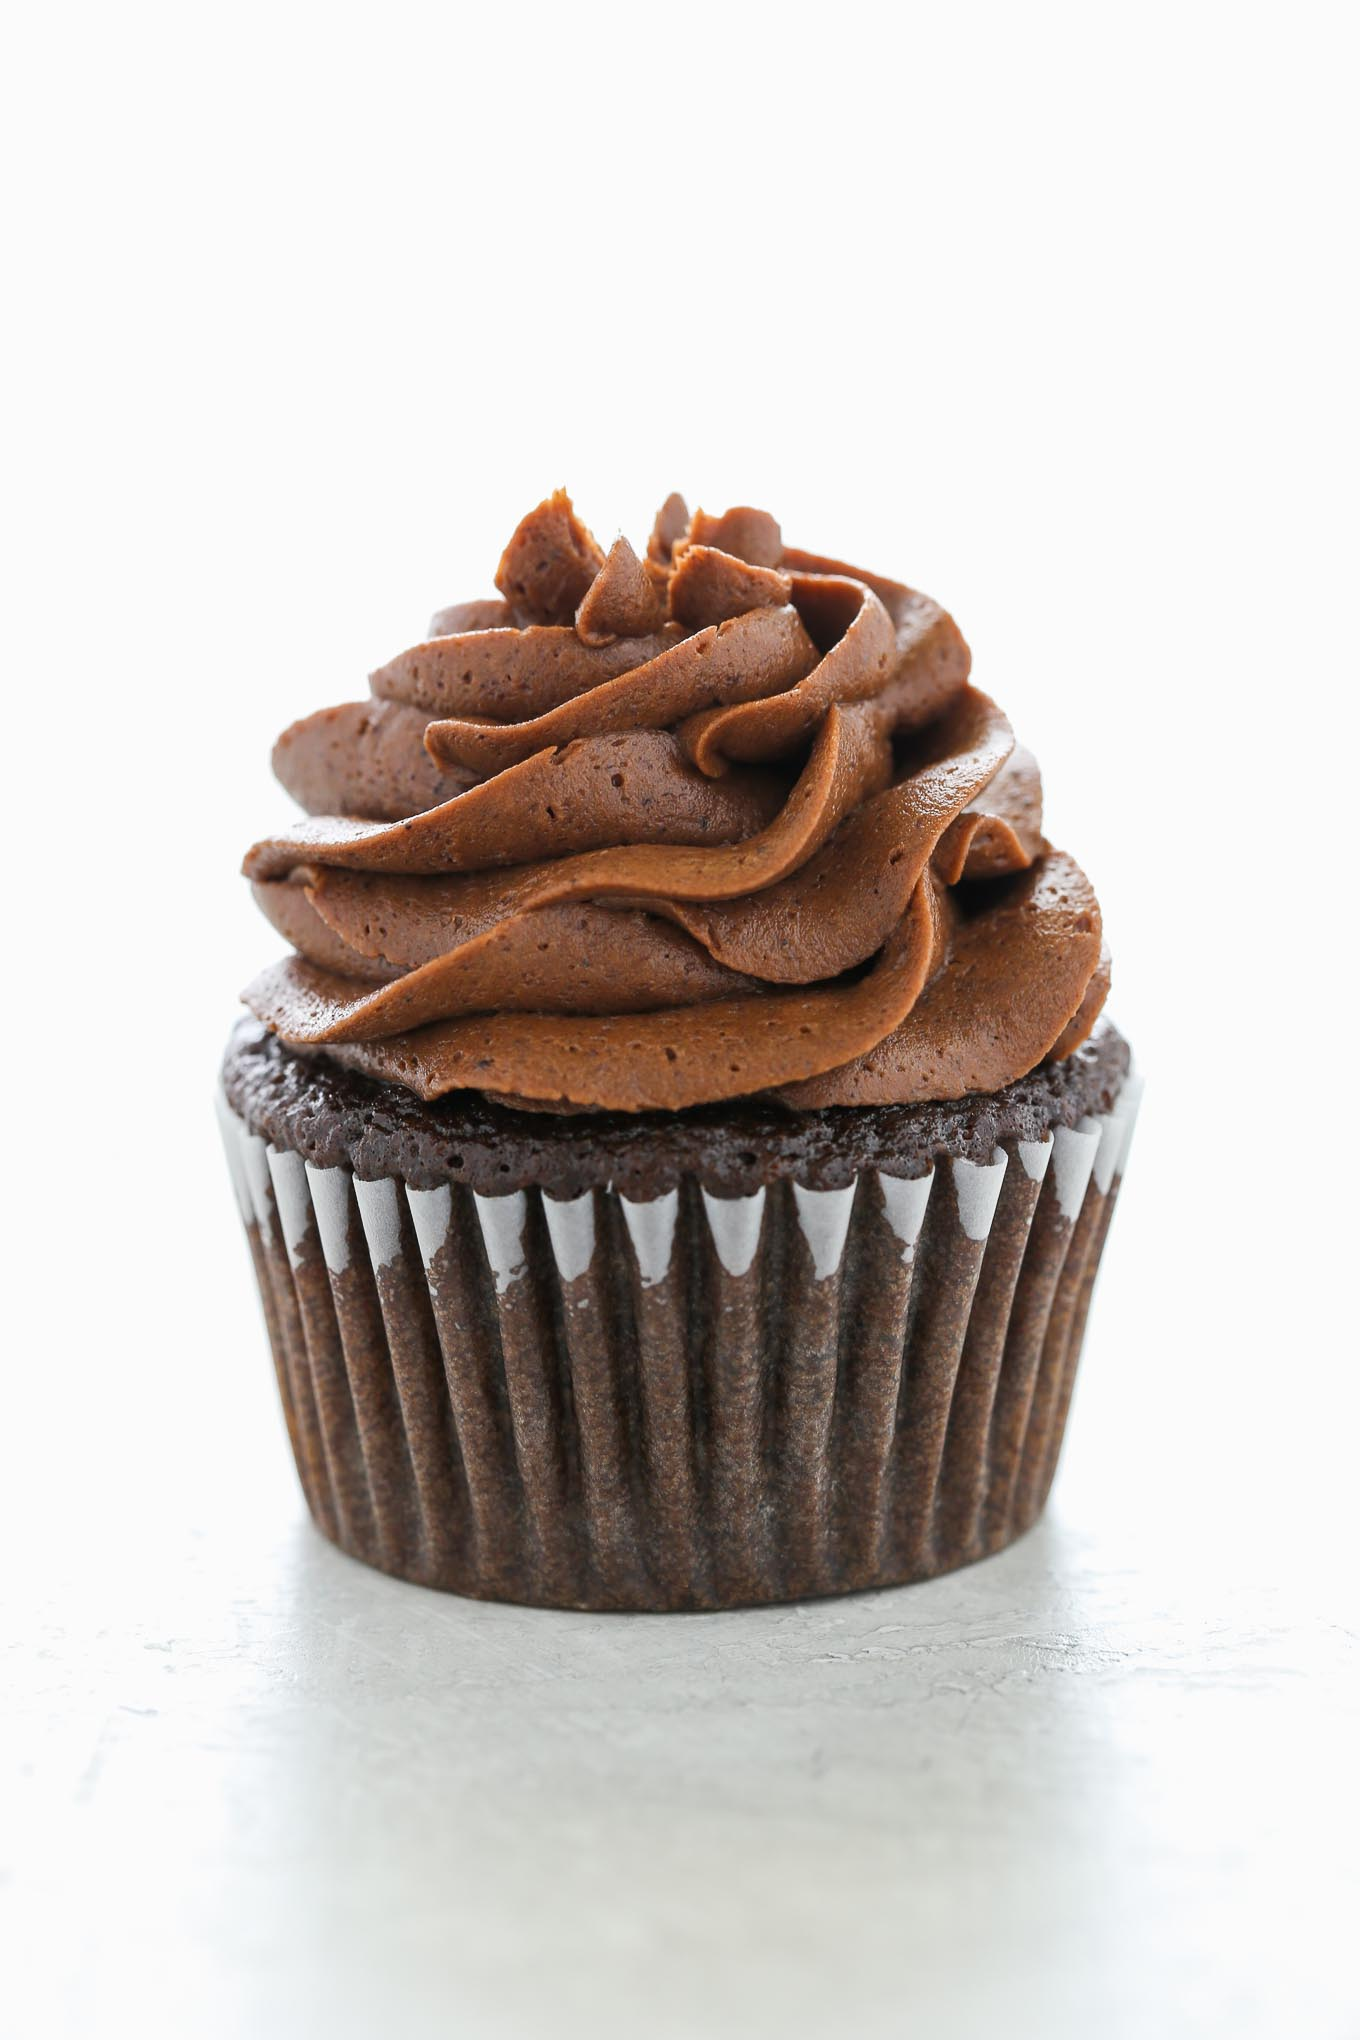 A single chocolate cupcake topped with a swirl of chocolate buttercream frosting.